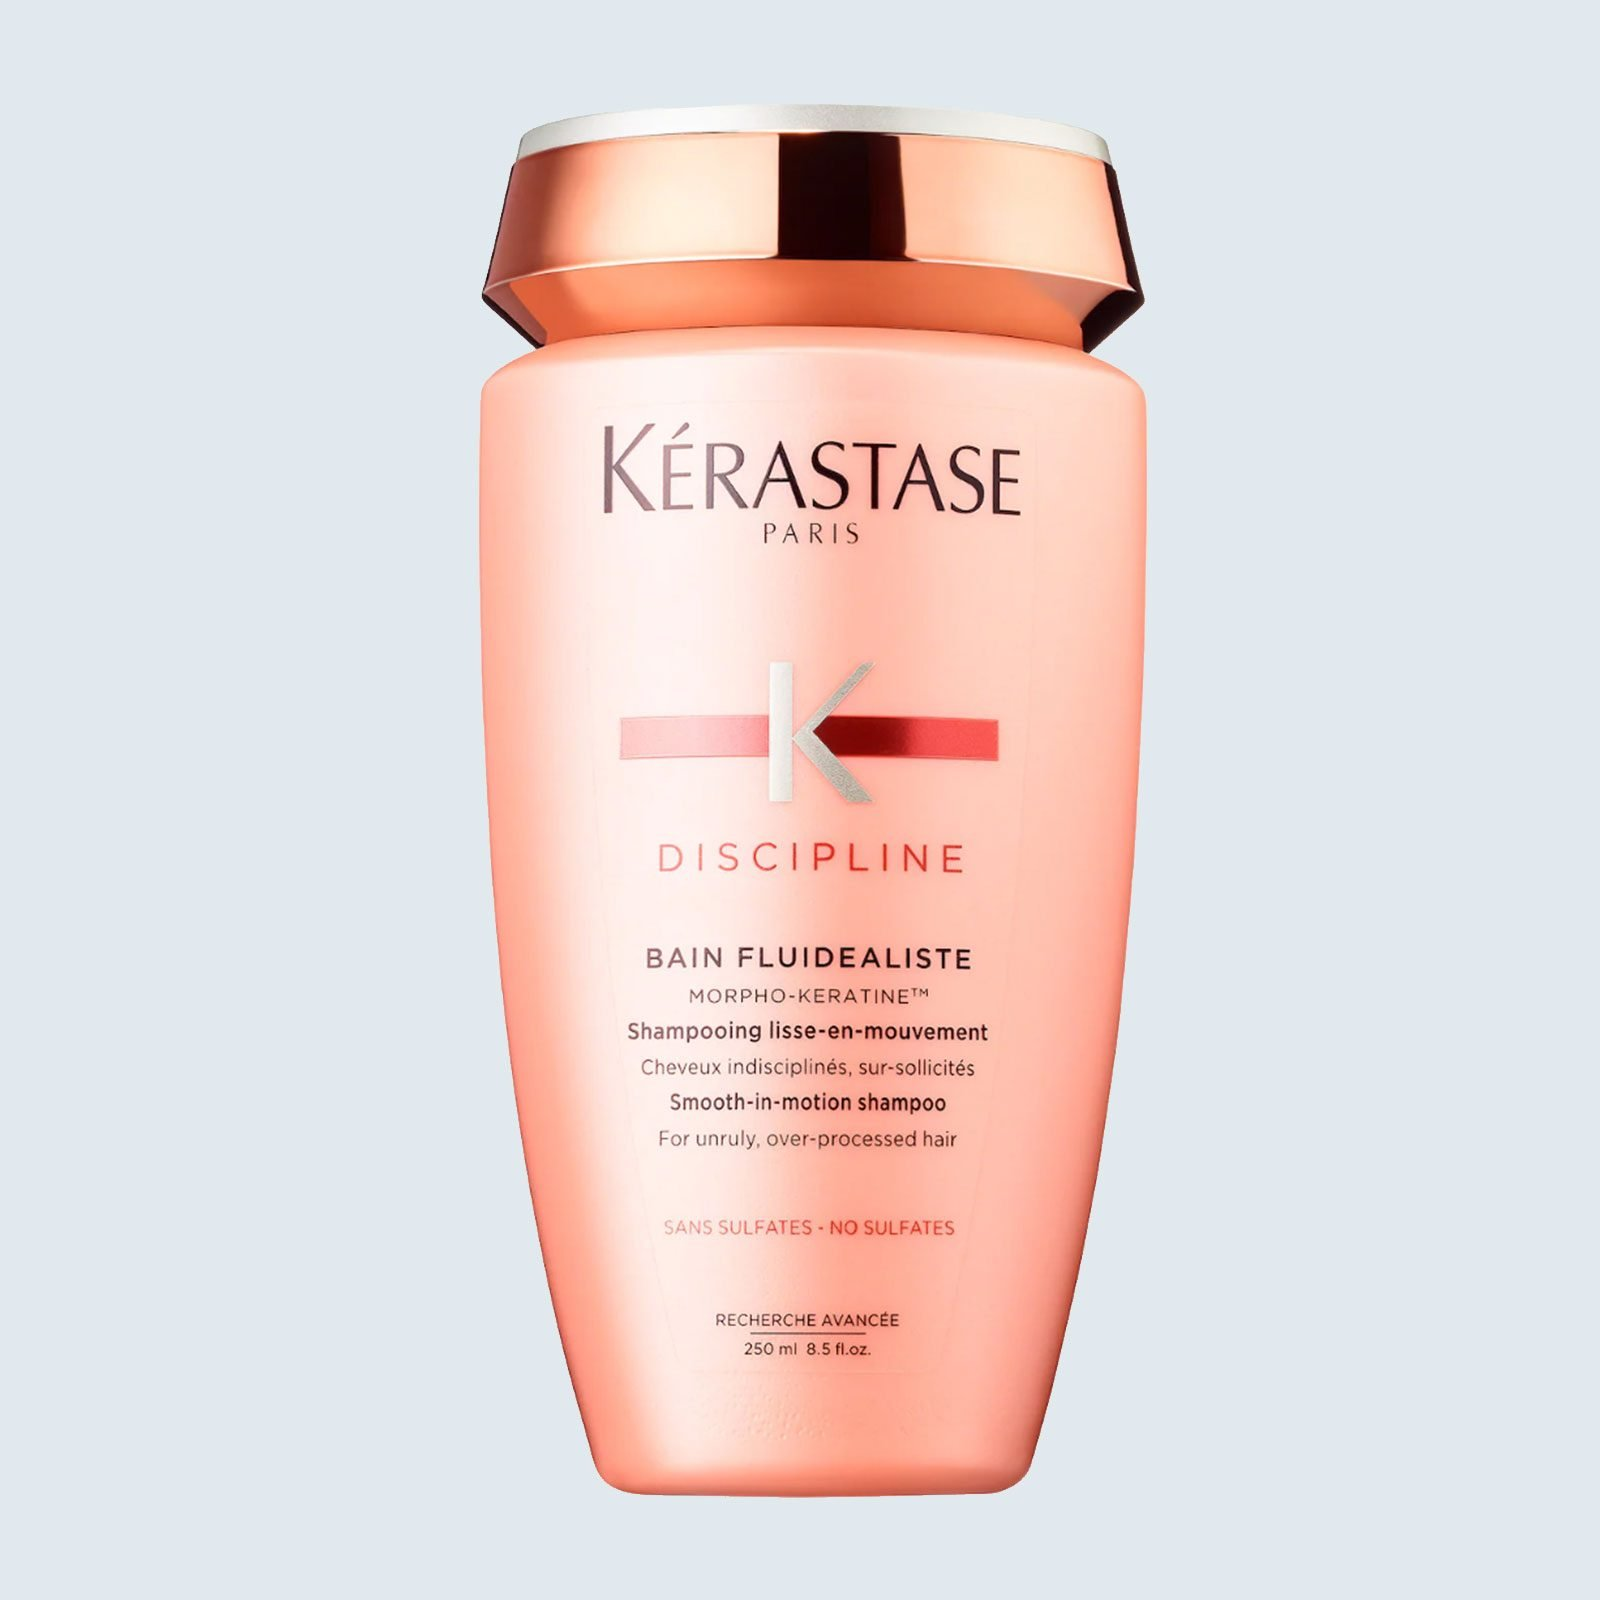 Best shampoo for wavy hair: Kérastase Discipline